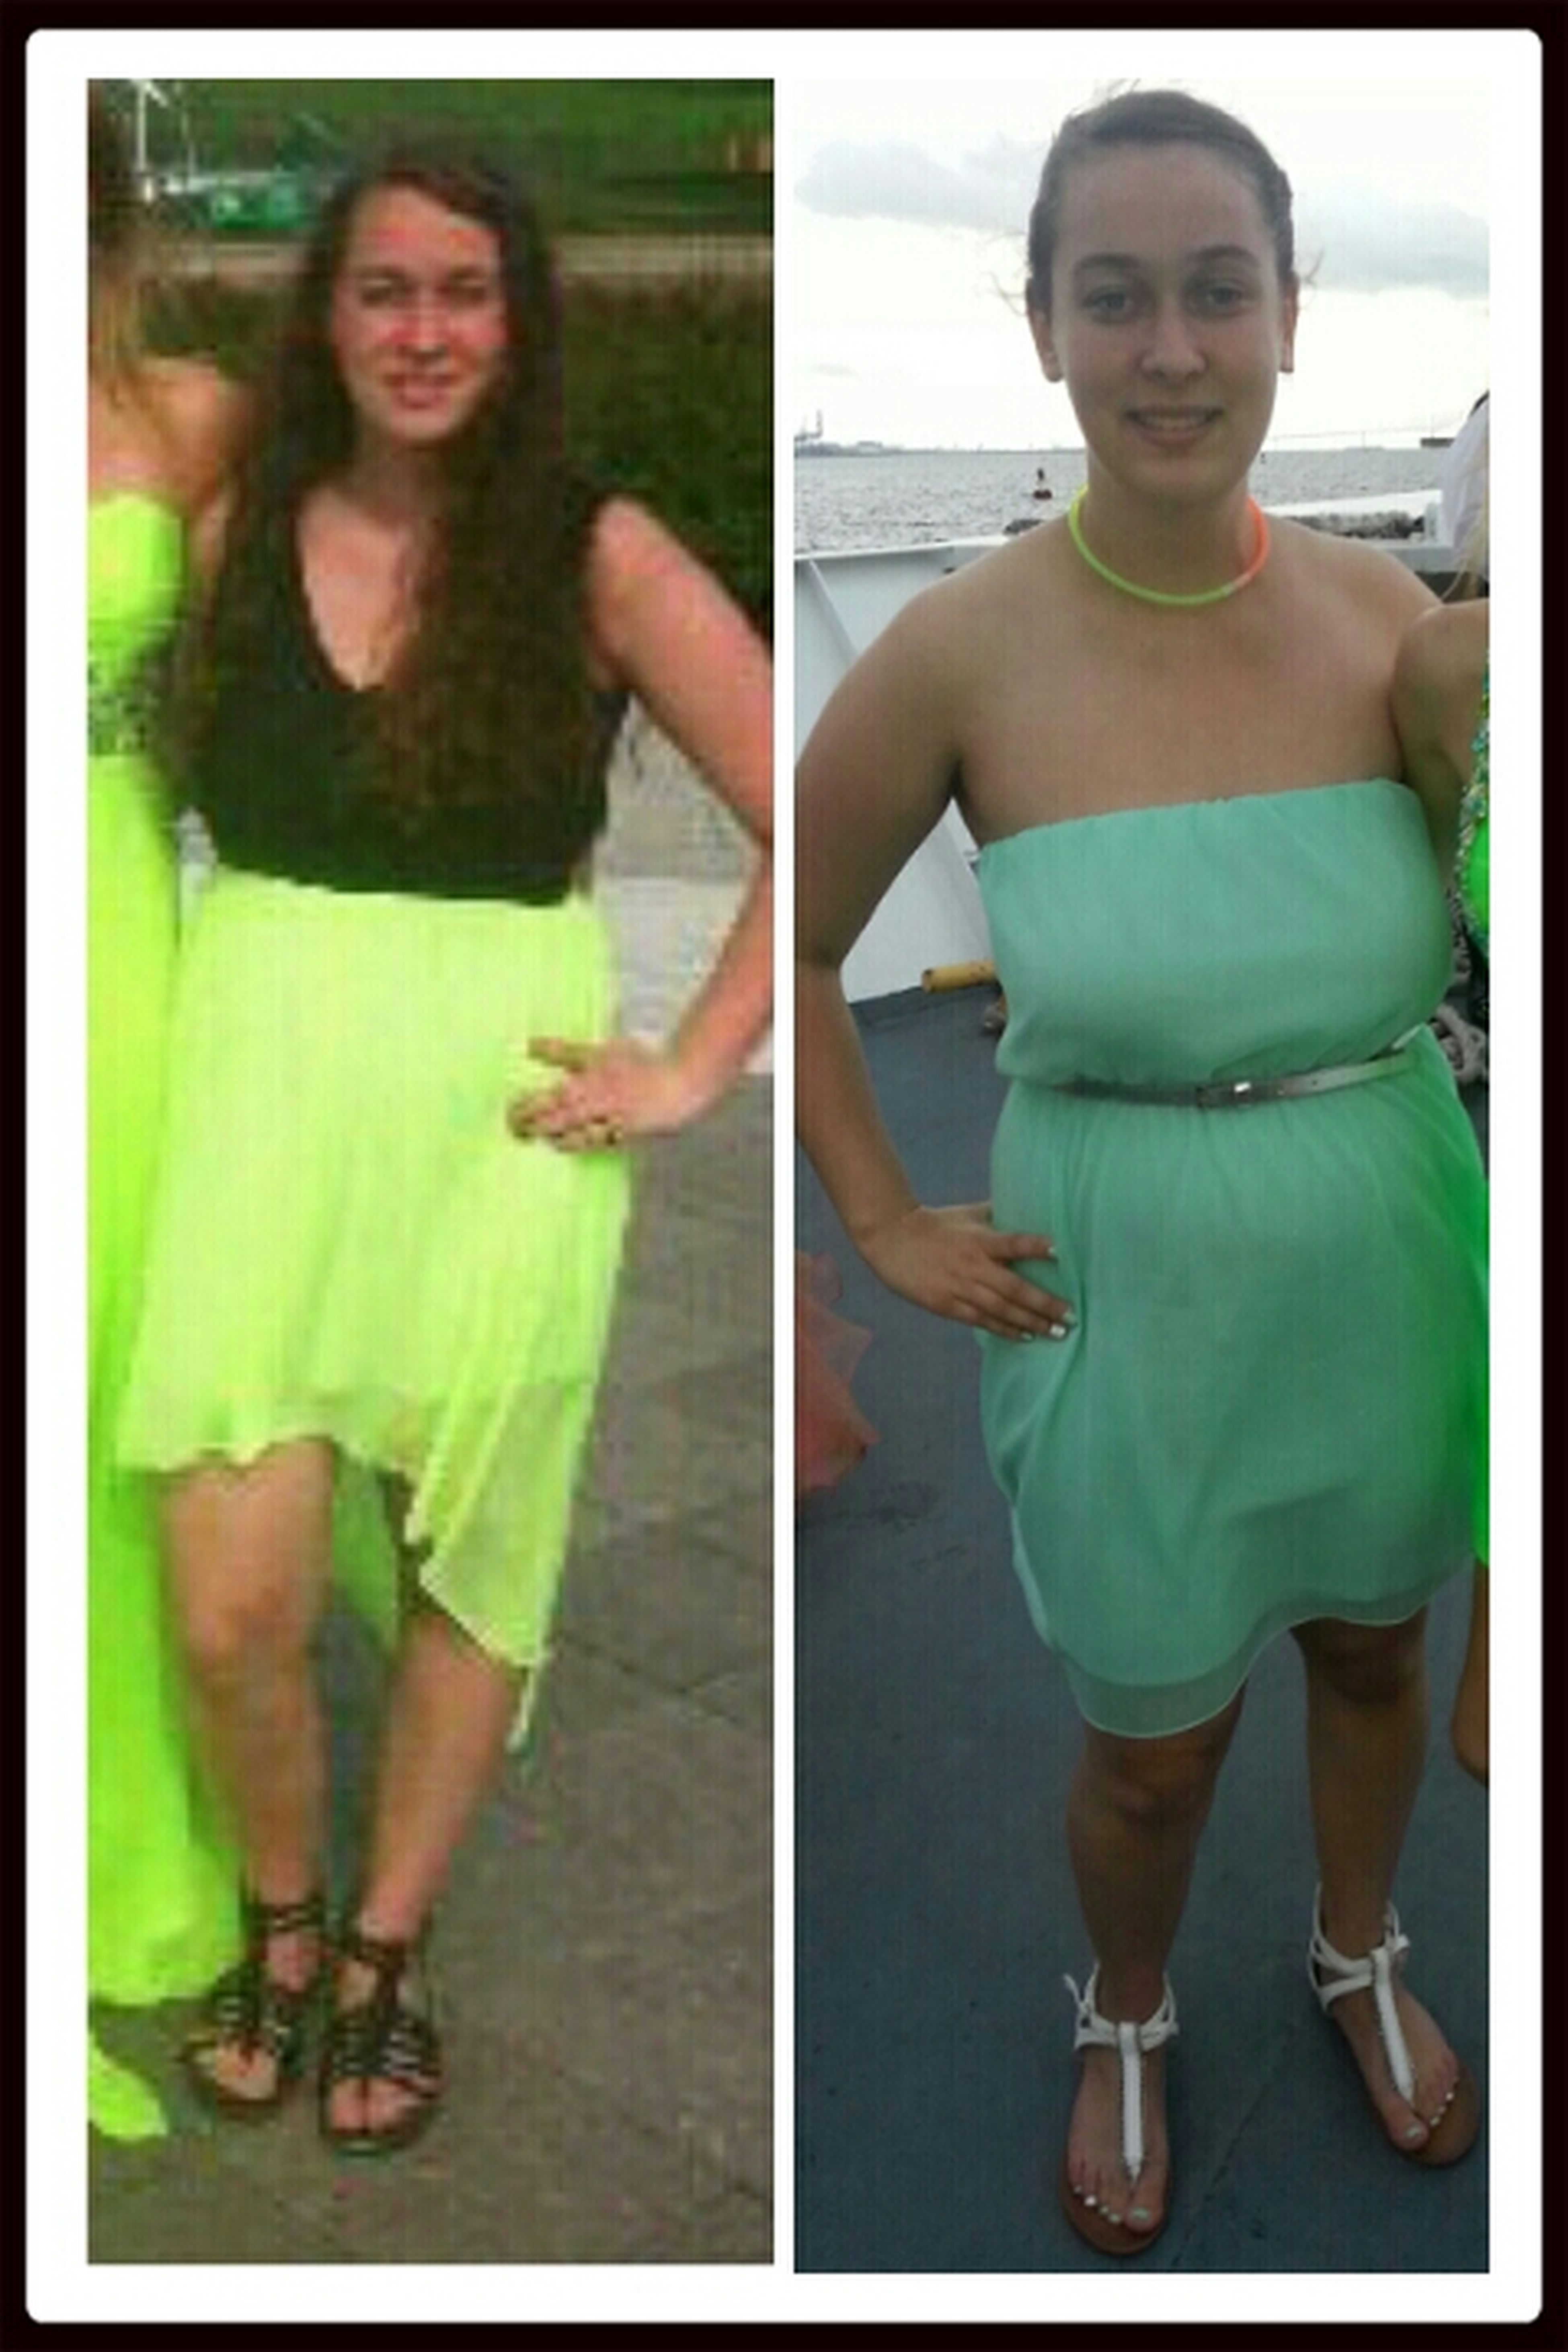 prom 2013 left picture in hotel. right picture on boat